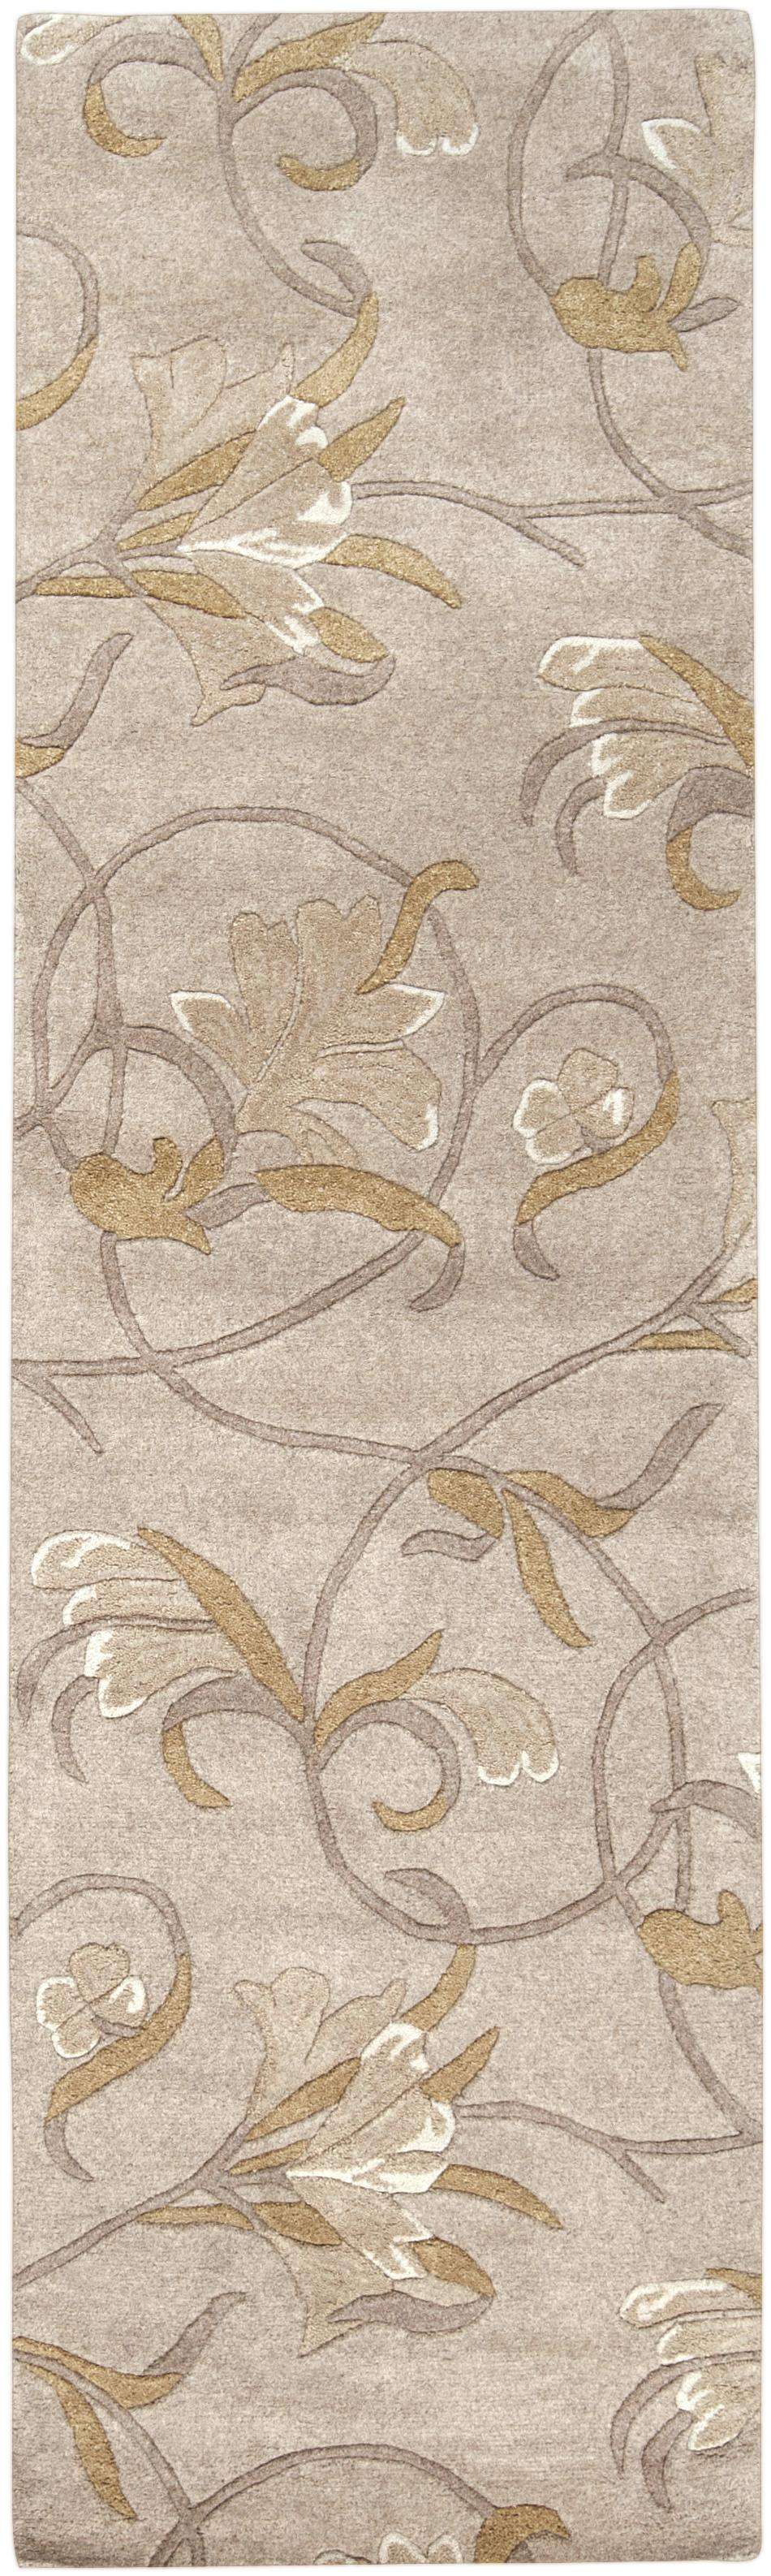 "Surya Rugs Goa 2'6"" x 8' - Item Number: G44-268"